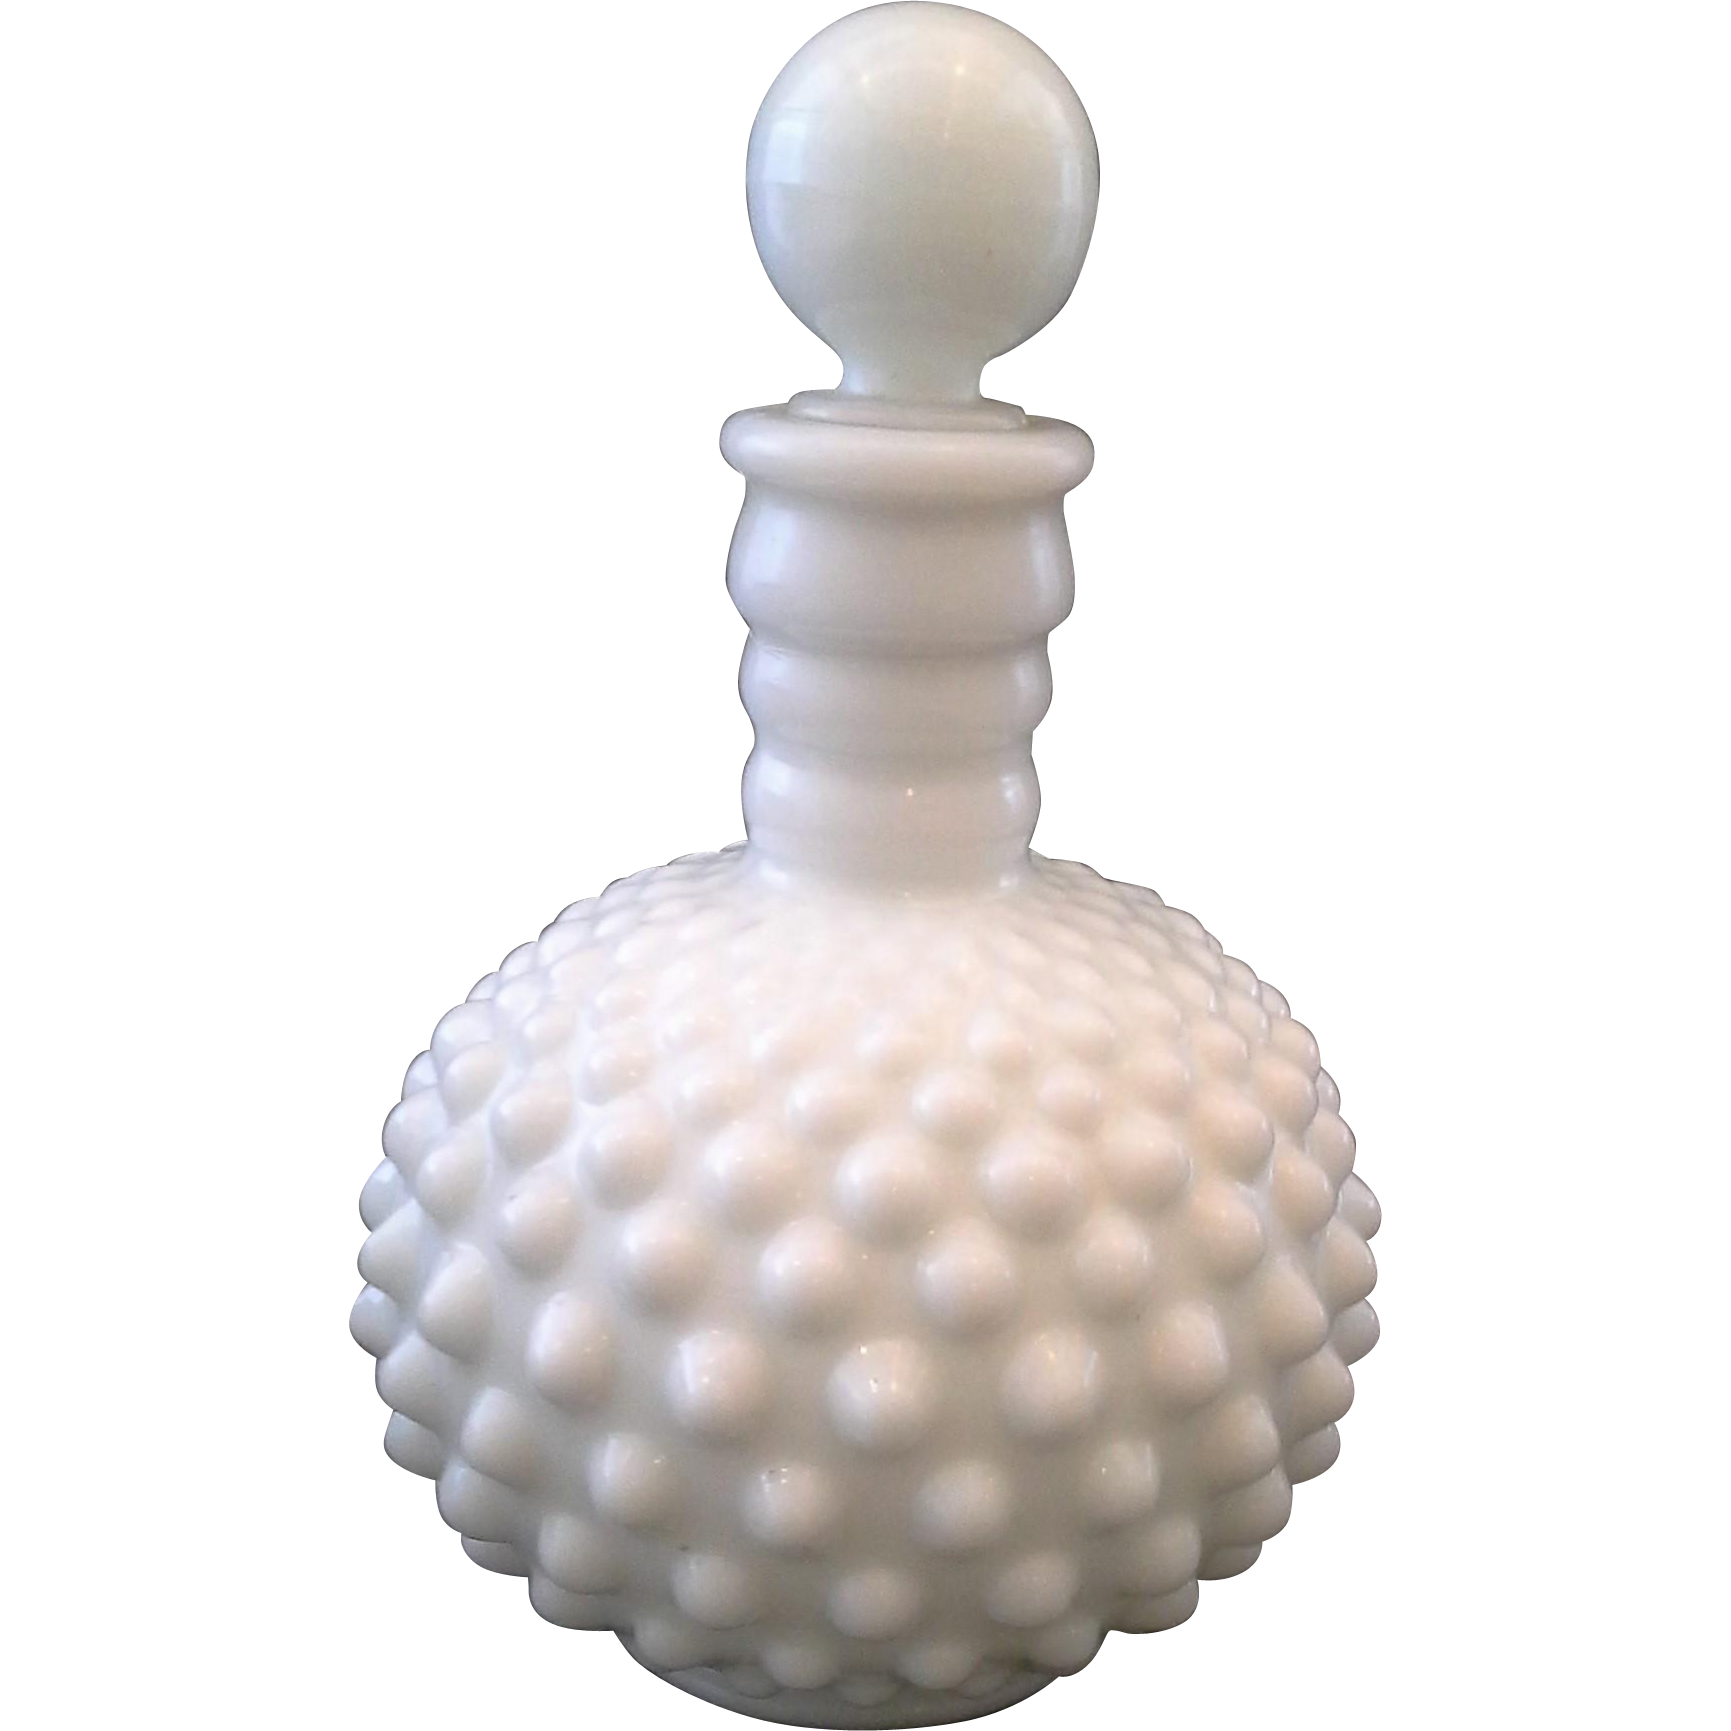 Fenton White Milk Glass Hobnail Cologne Bottle Wrisleys Wrizleys